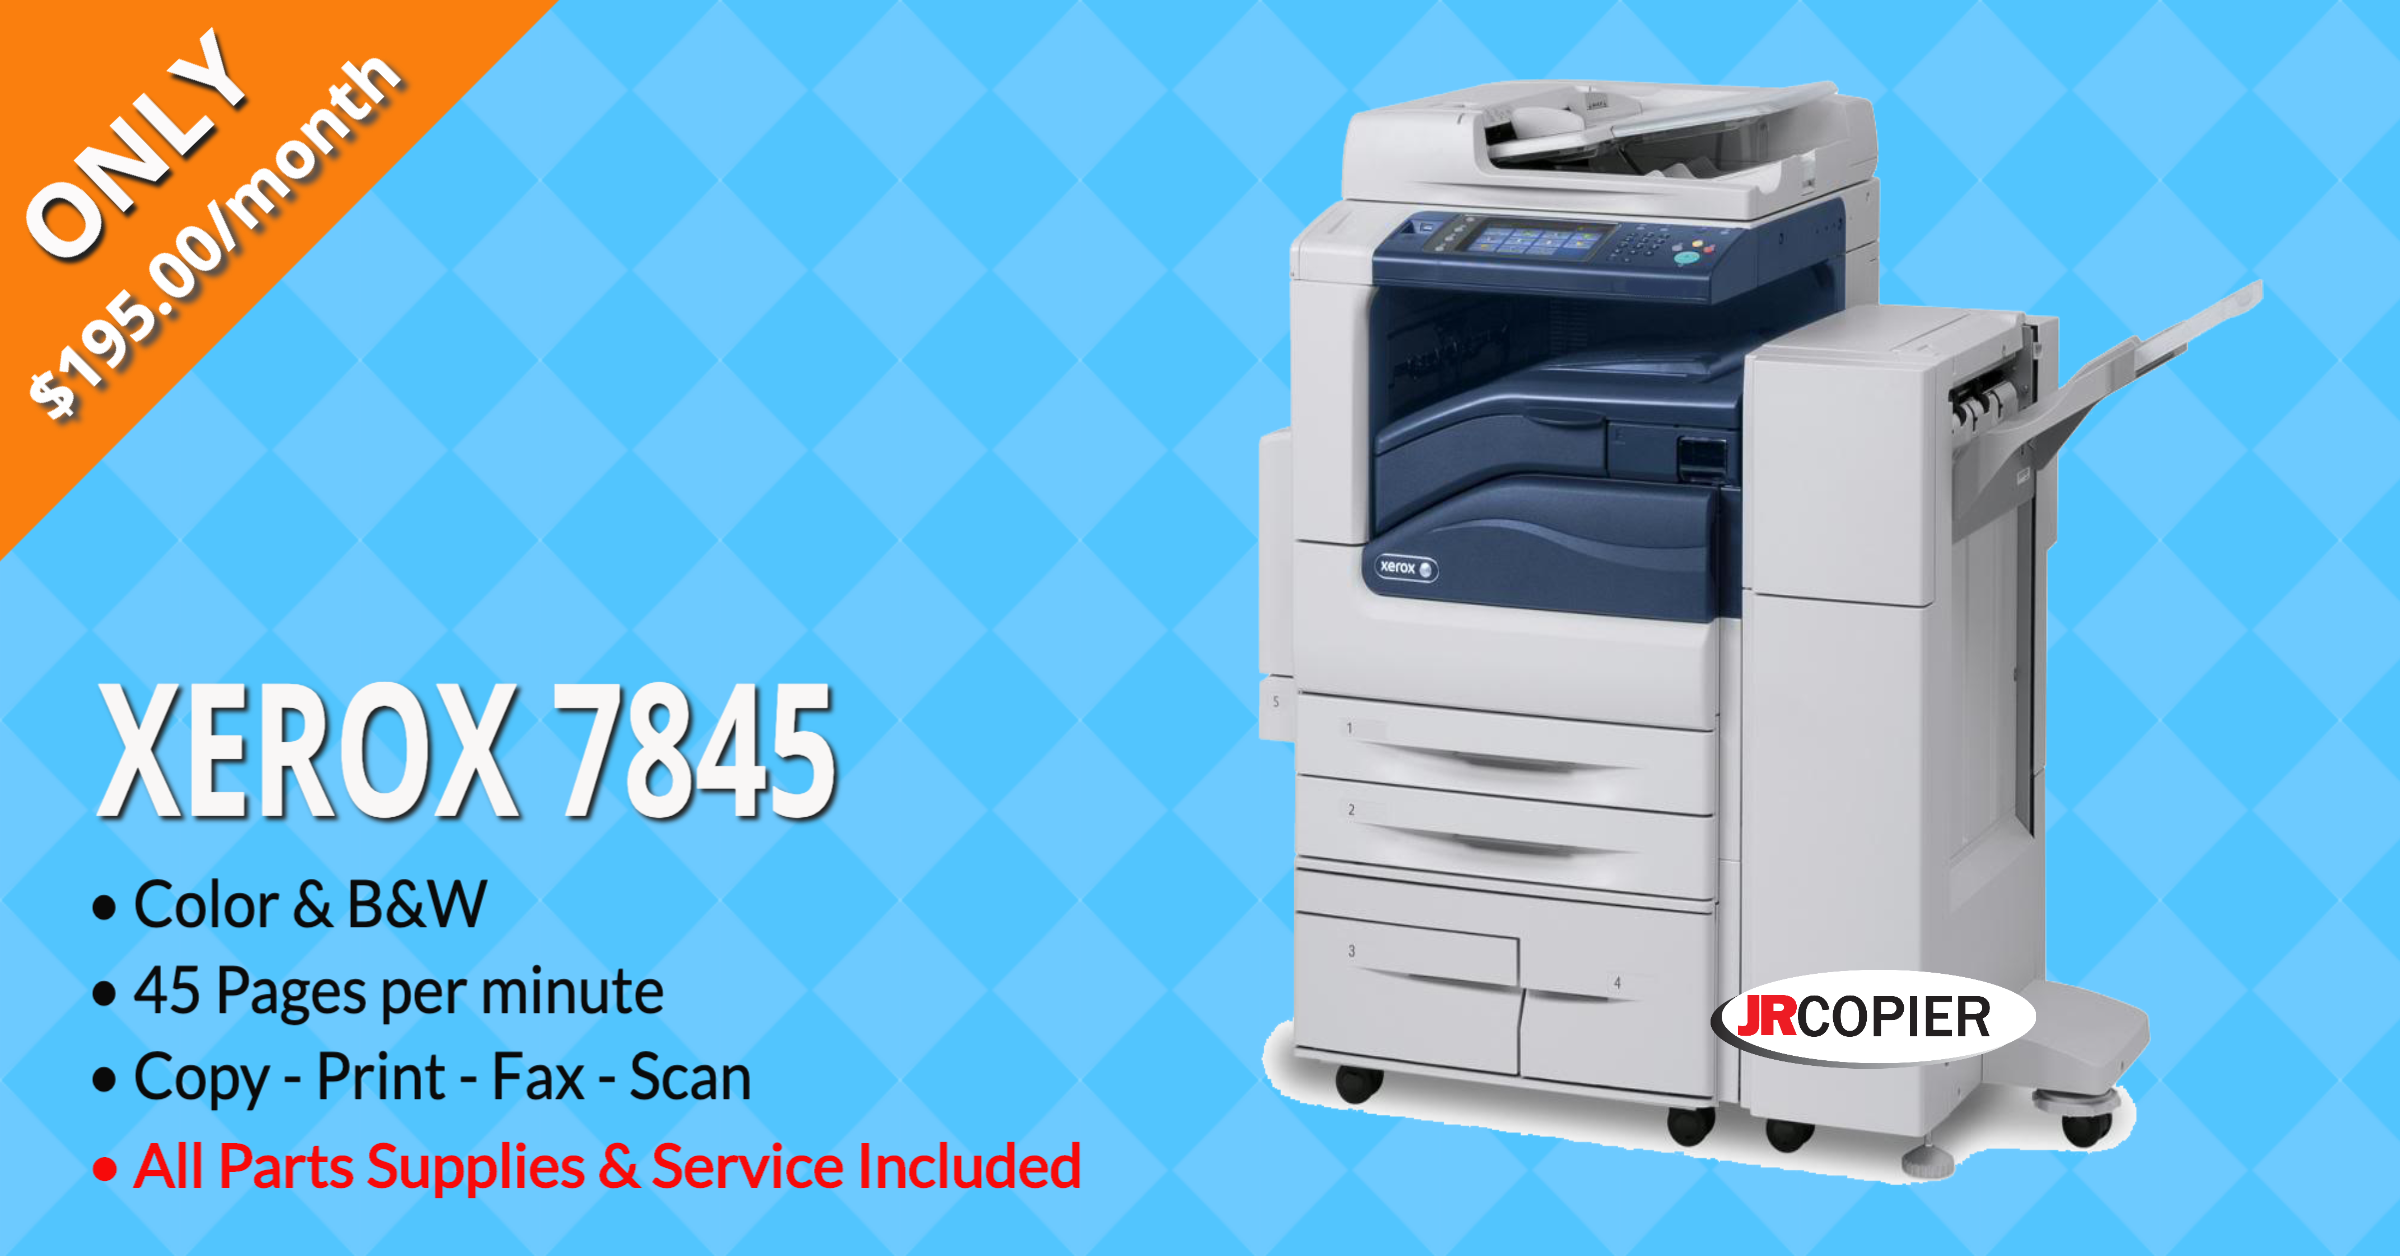 Copy Machine Sales 08540, 08824, 08852